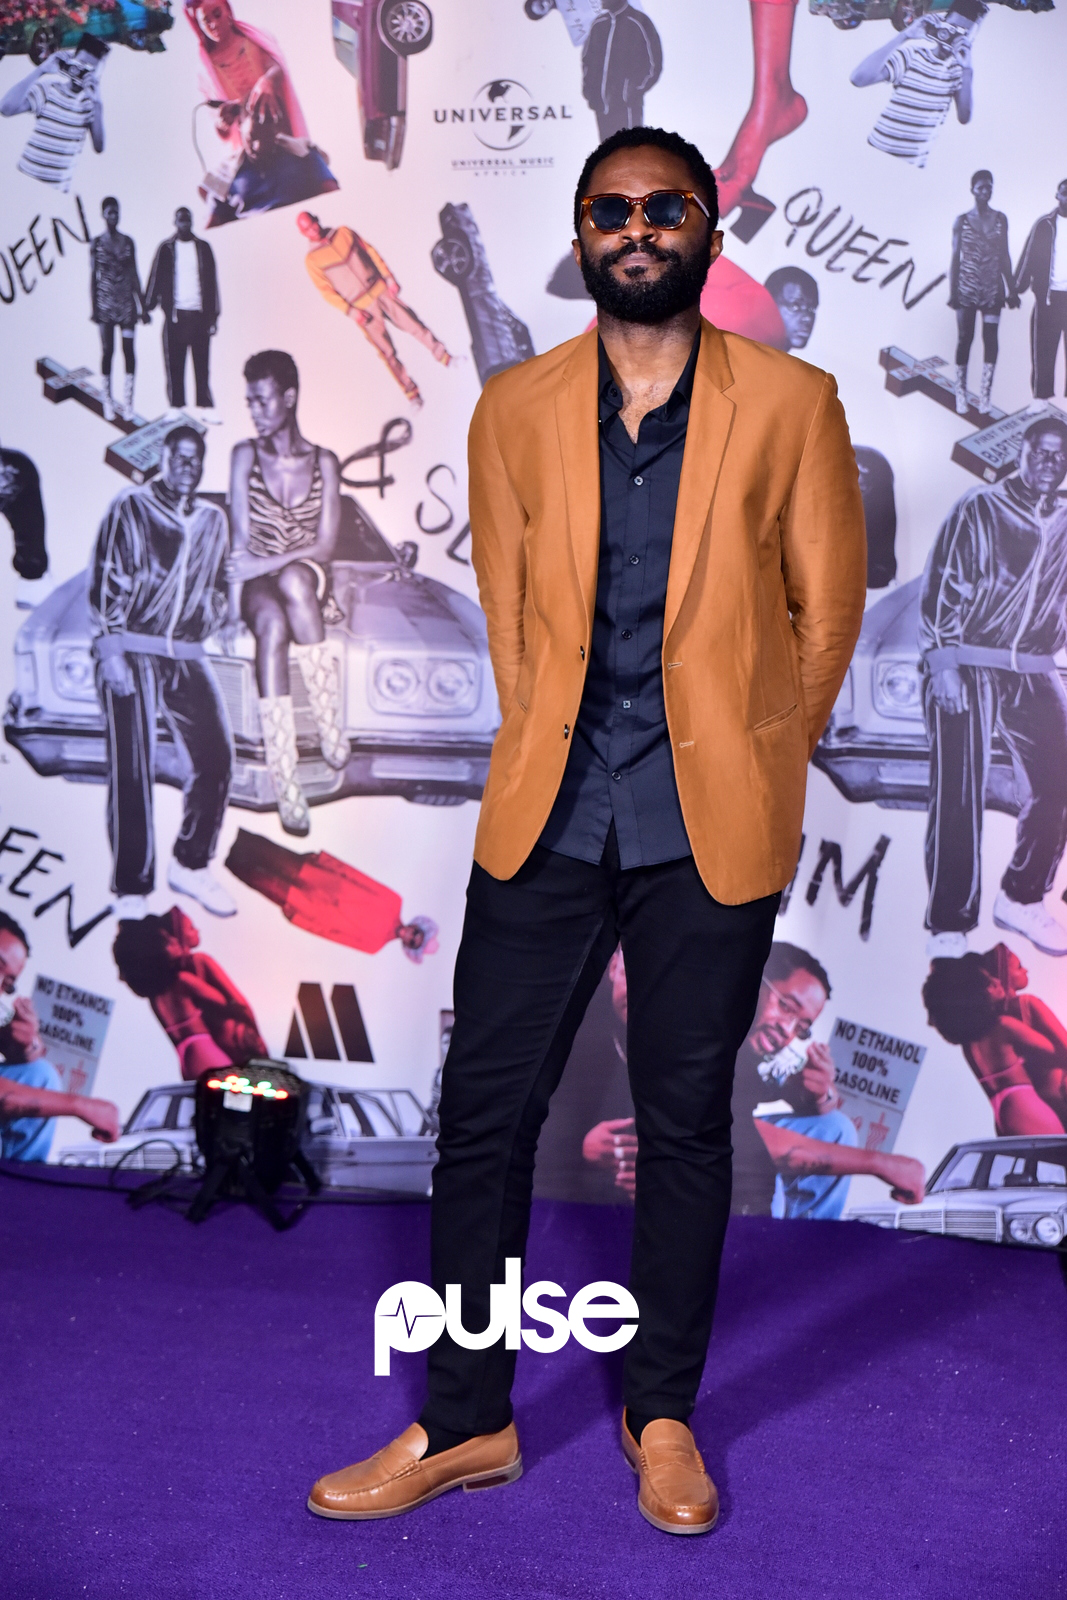 Nollywood actor Ozzy Agu at the 'Queen and Slim' premiere [ Pulse]